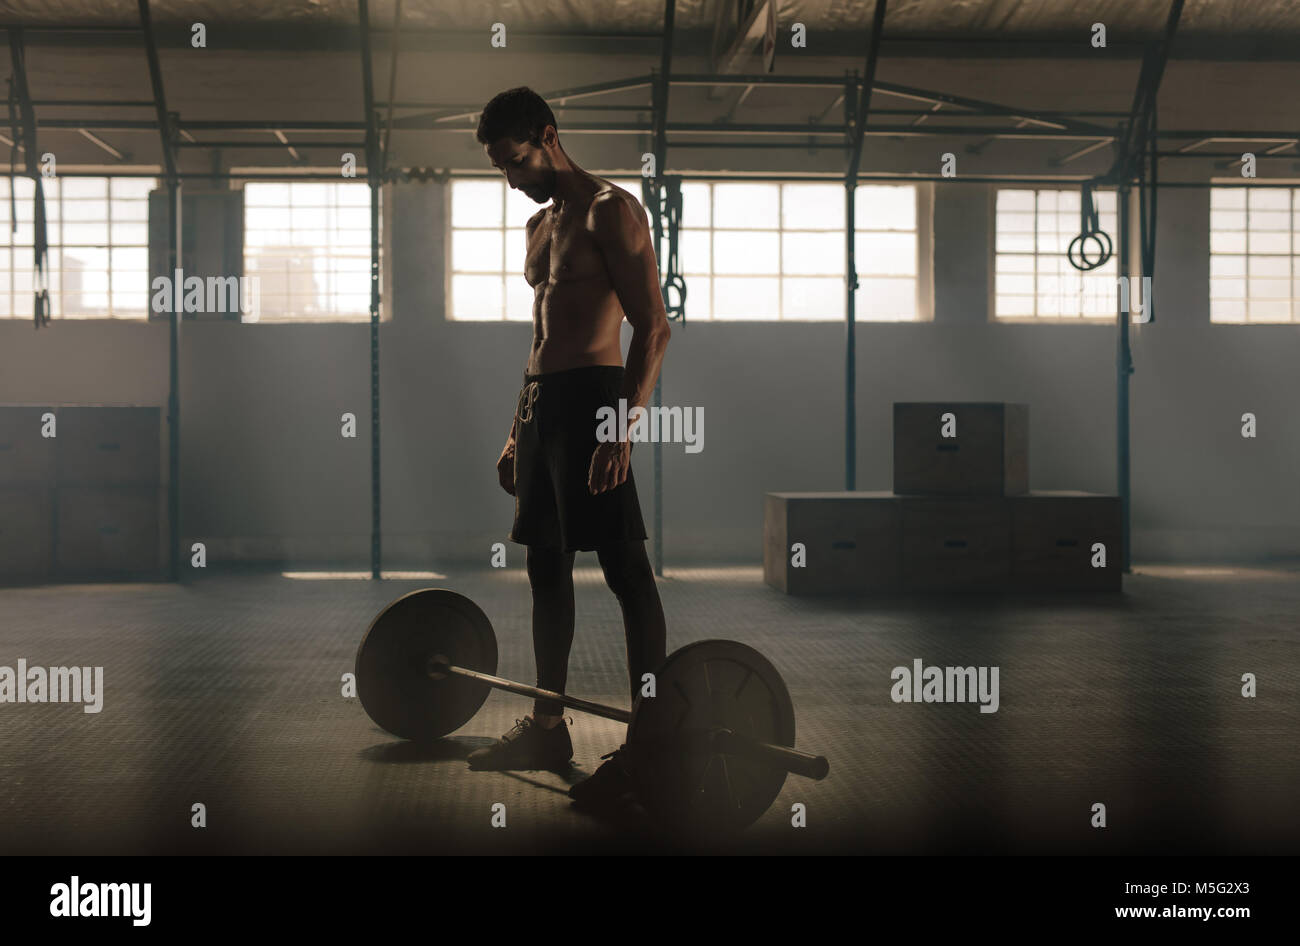 Man exercising with barbell at gym. Man standing with heavy weights barbell on gym floor. - Stock Image